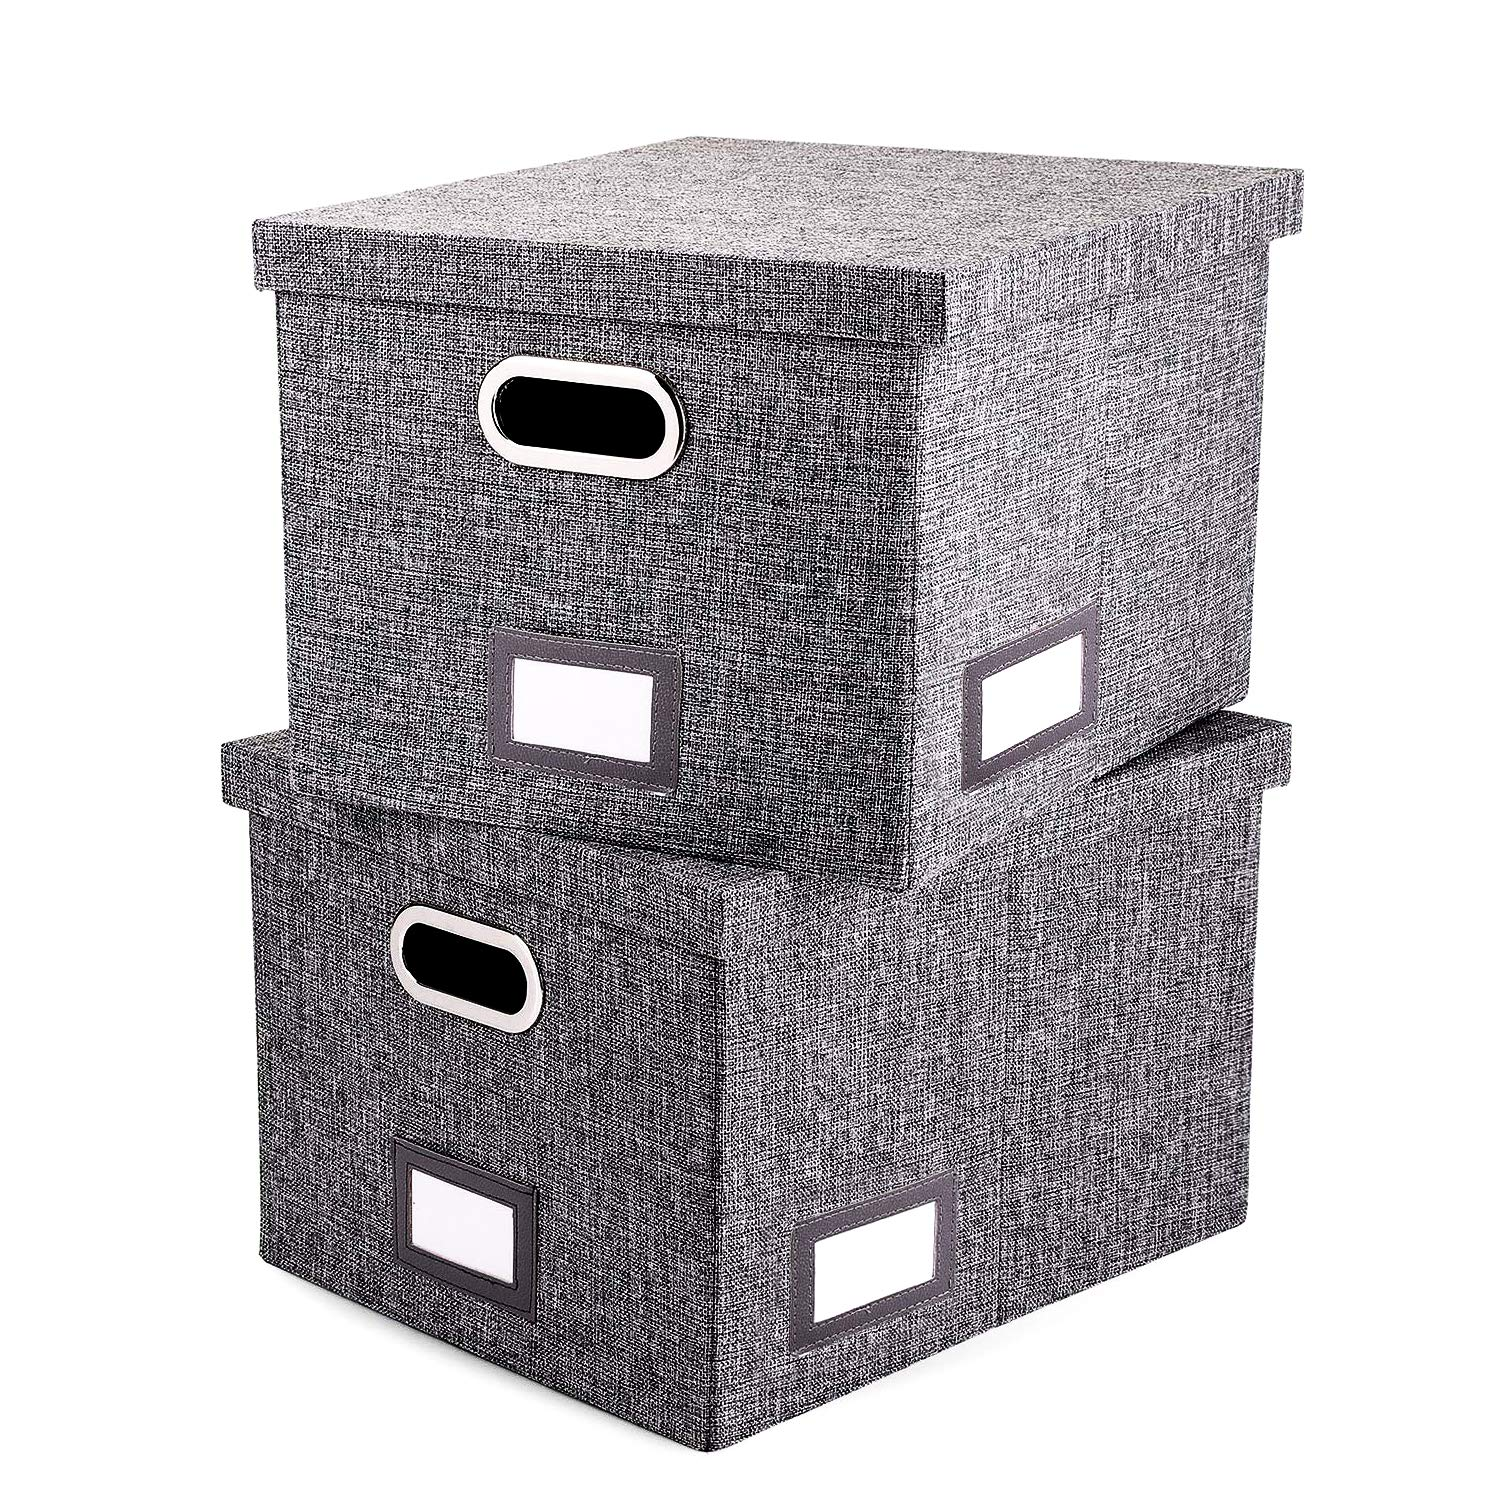 File Organizer Box Set of 2 - Collapsible Linen Filing Boxes for Easy File Folder Storage- Handles and Removable Lid   Organize Your Documents and Hanging Files in Style by AKSDESY